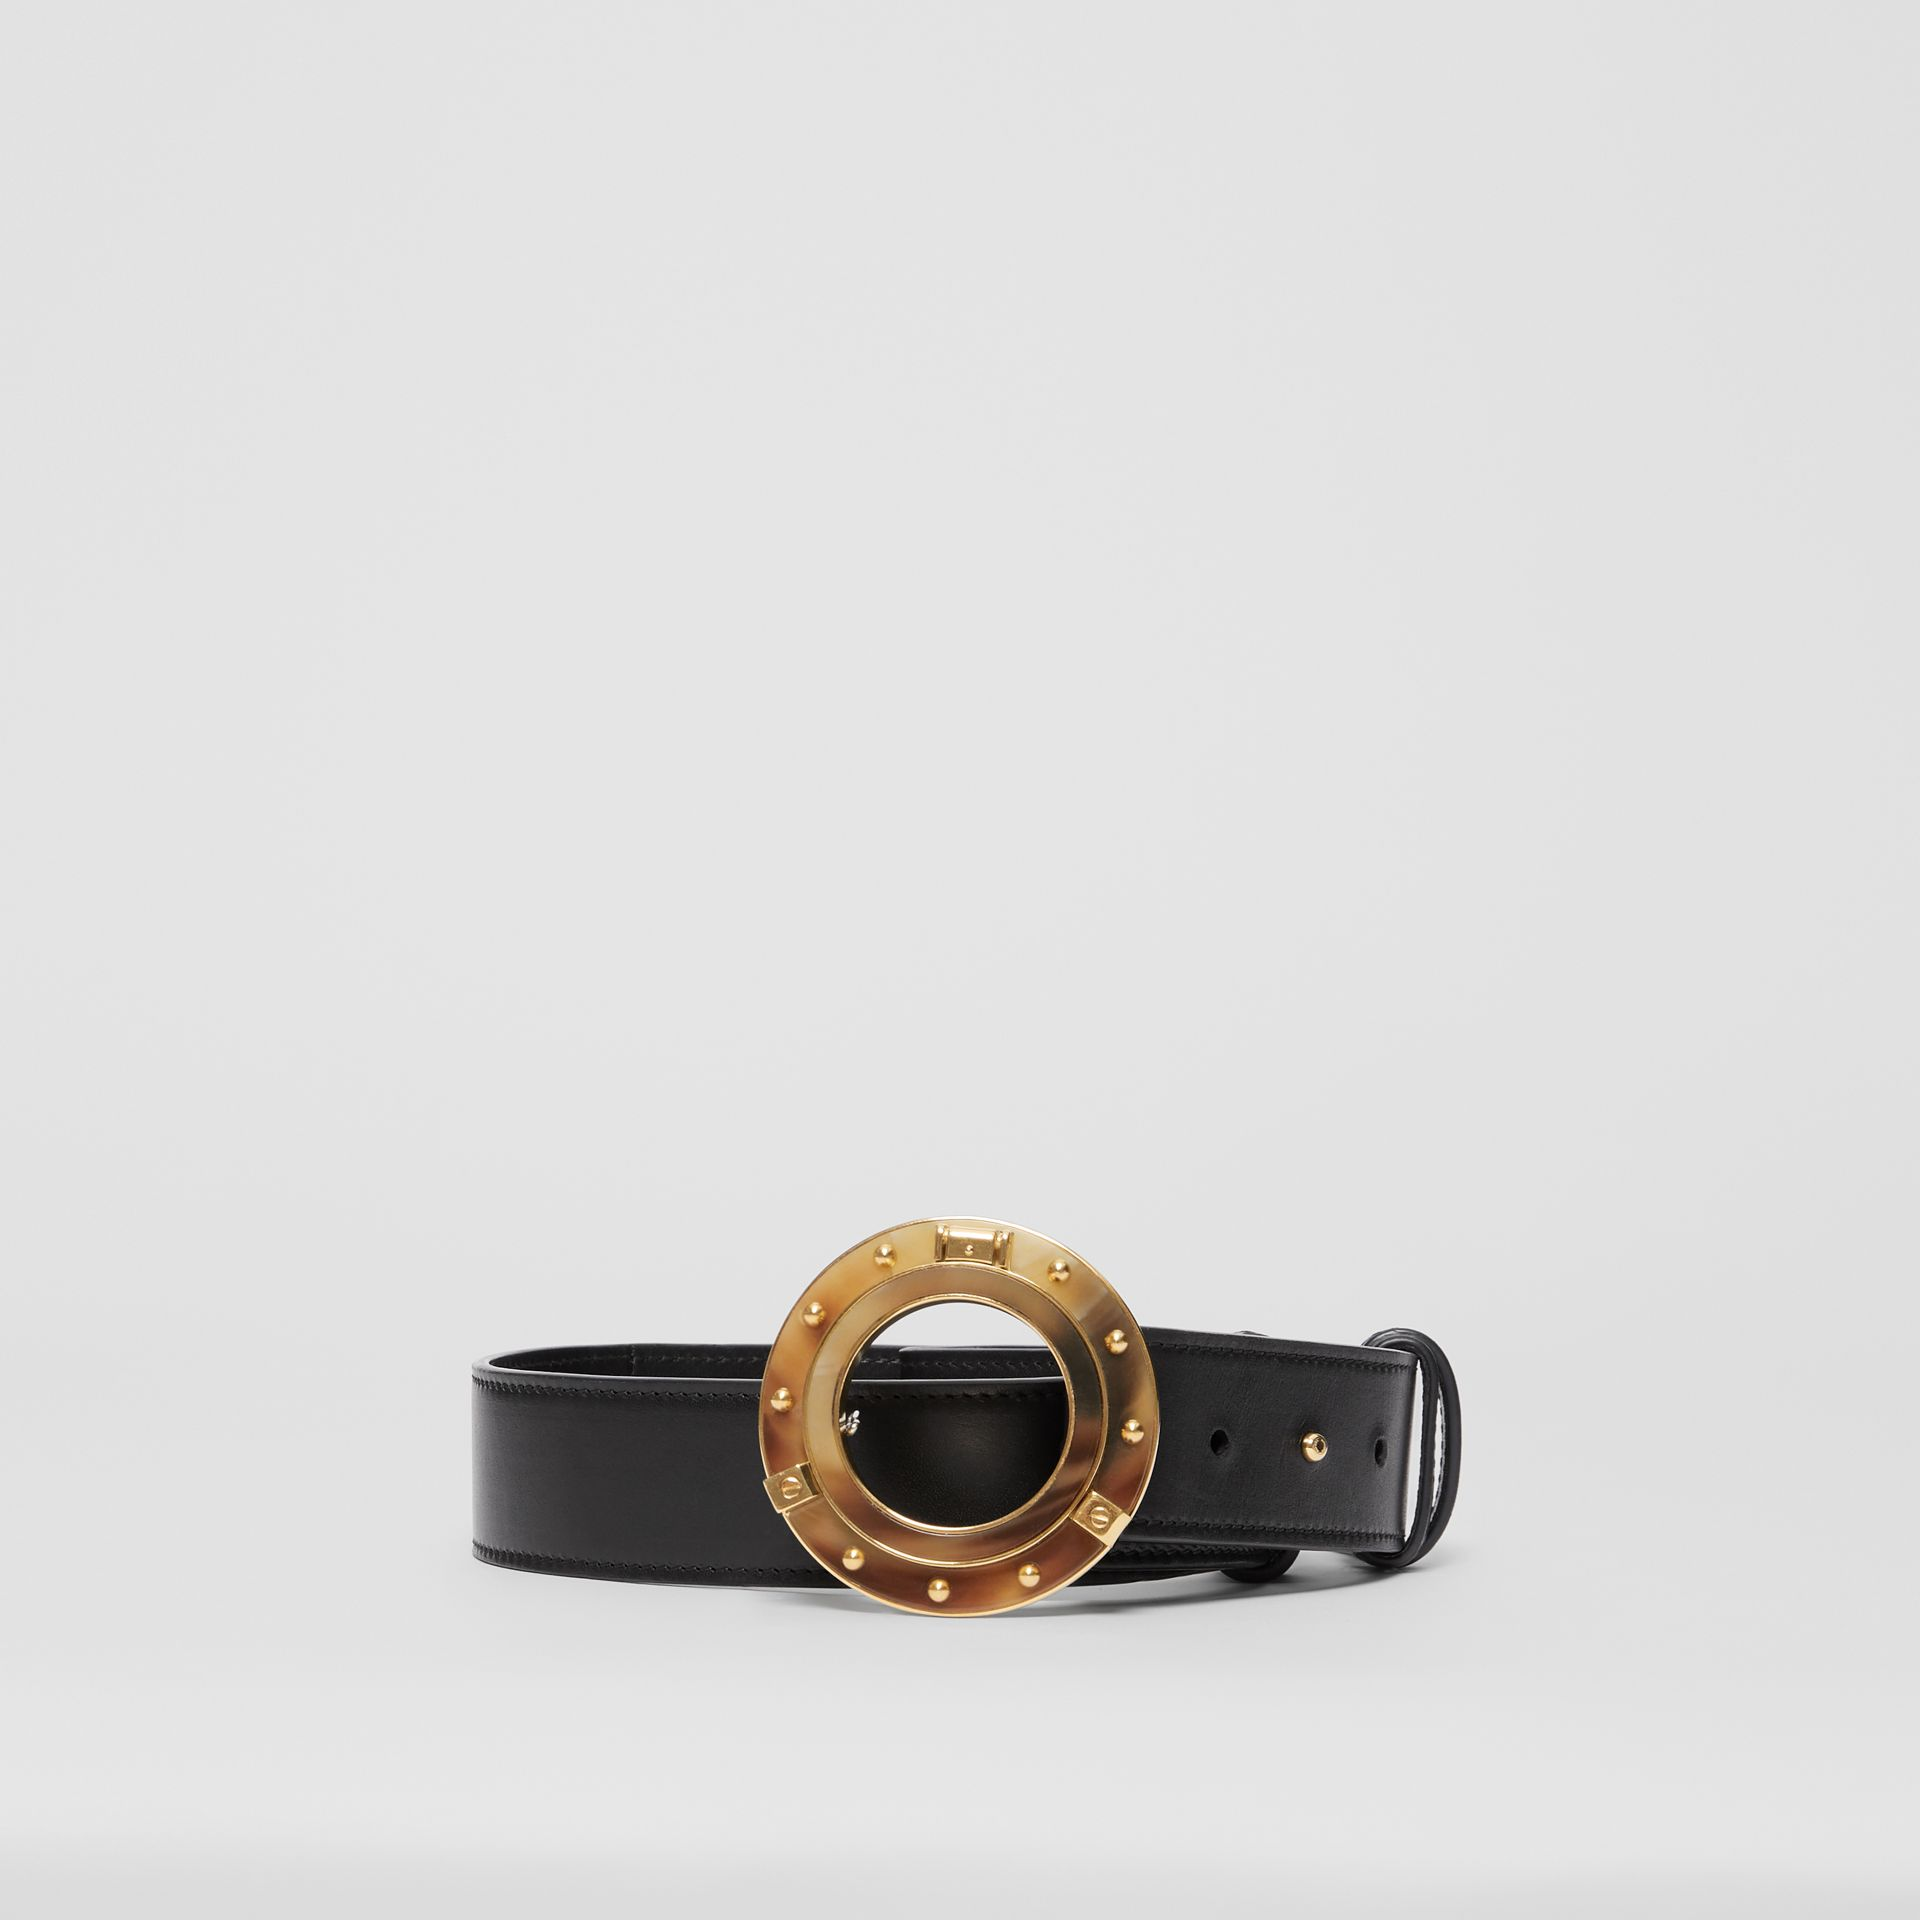 Porthole Buckle Leather Belt in Black - Women | Burberry Singapore - gallery image 3